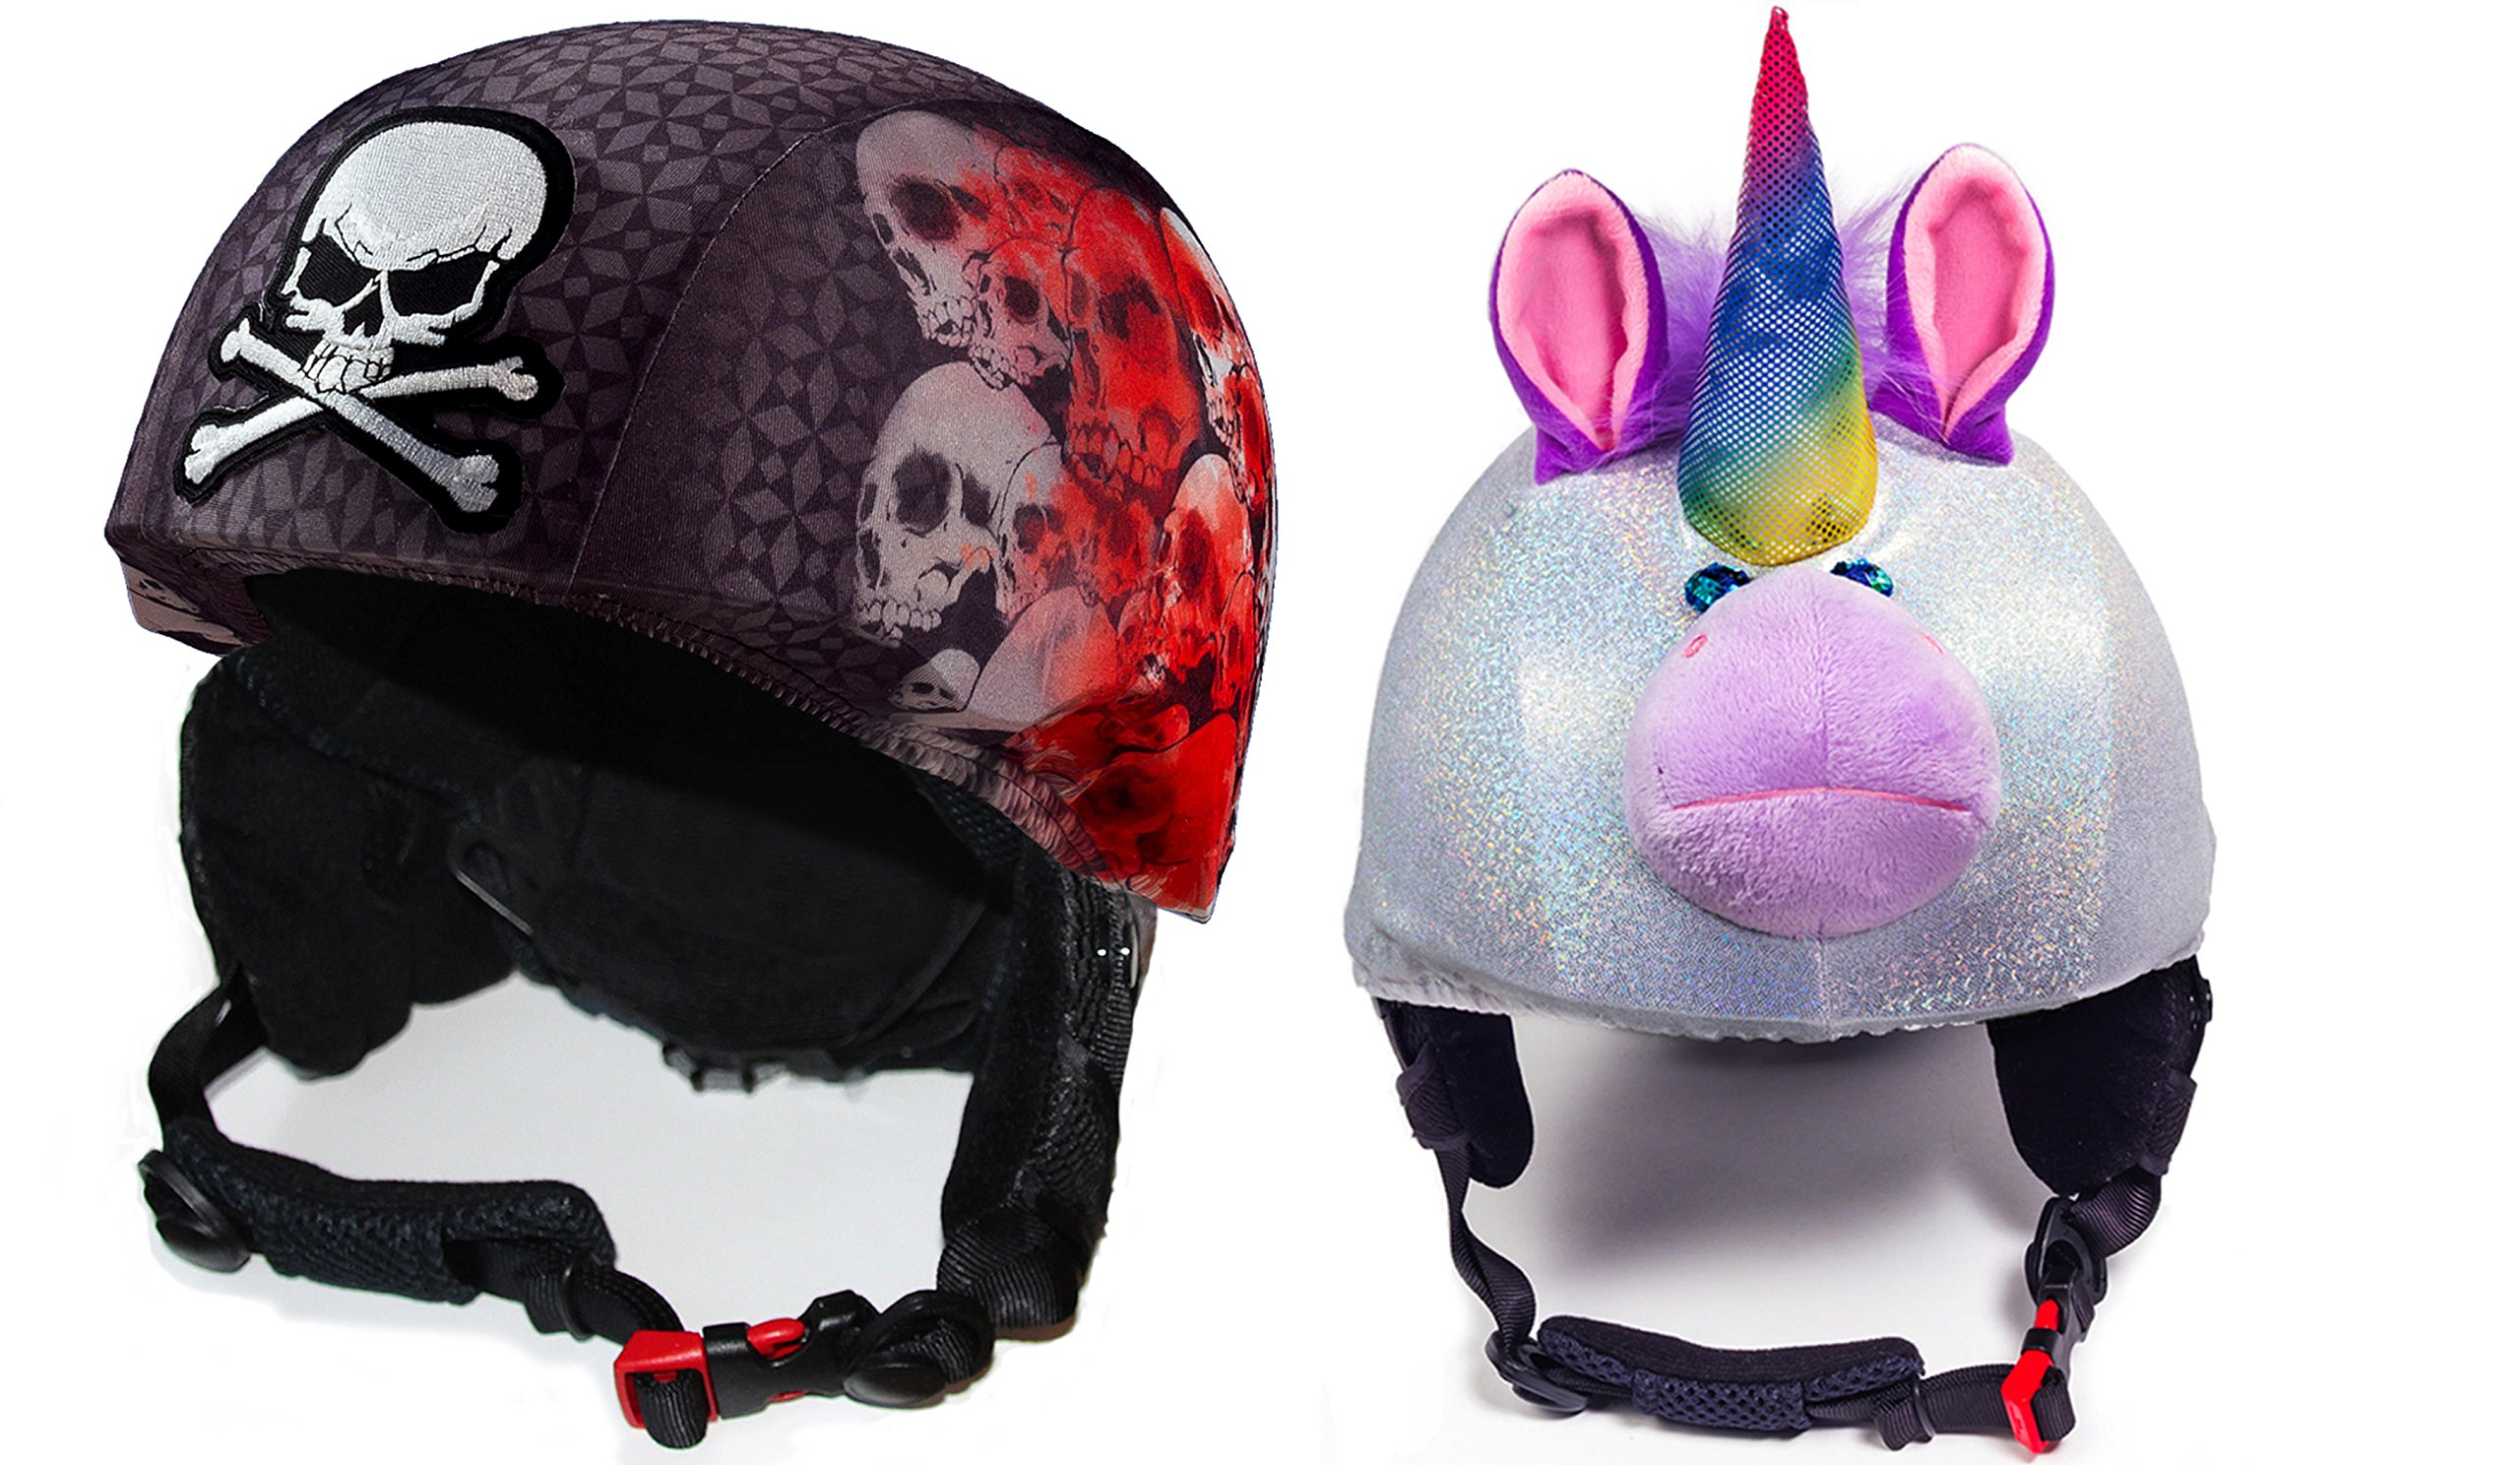 Fun Helmet Cover bundle Screaming Skulls And Sparky the Unicorn